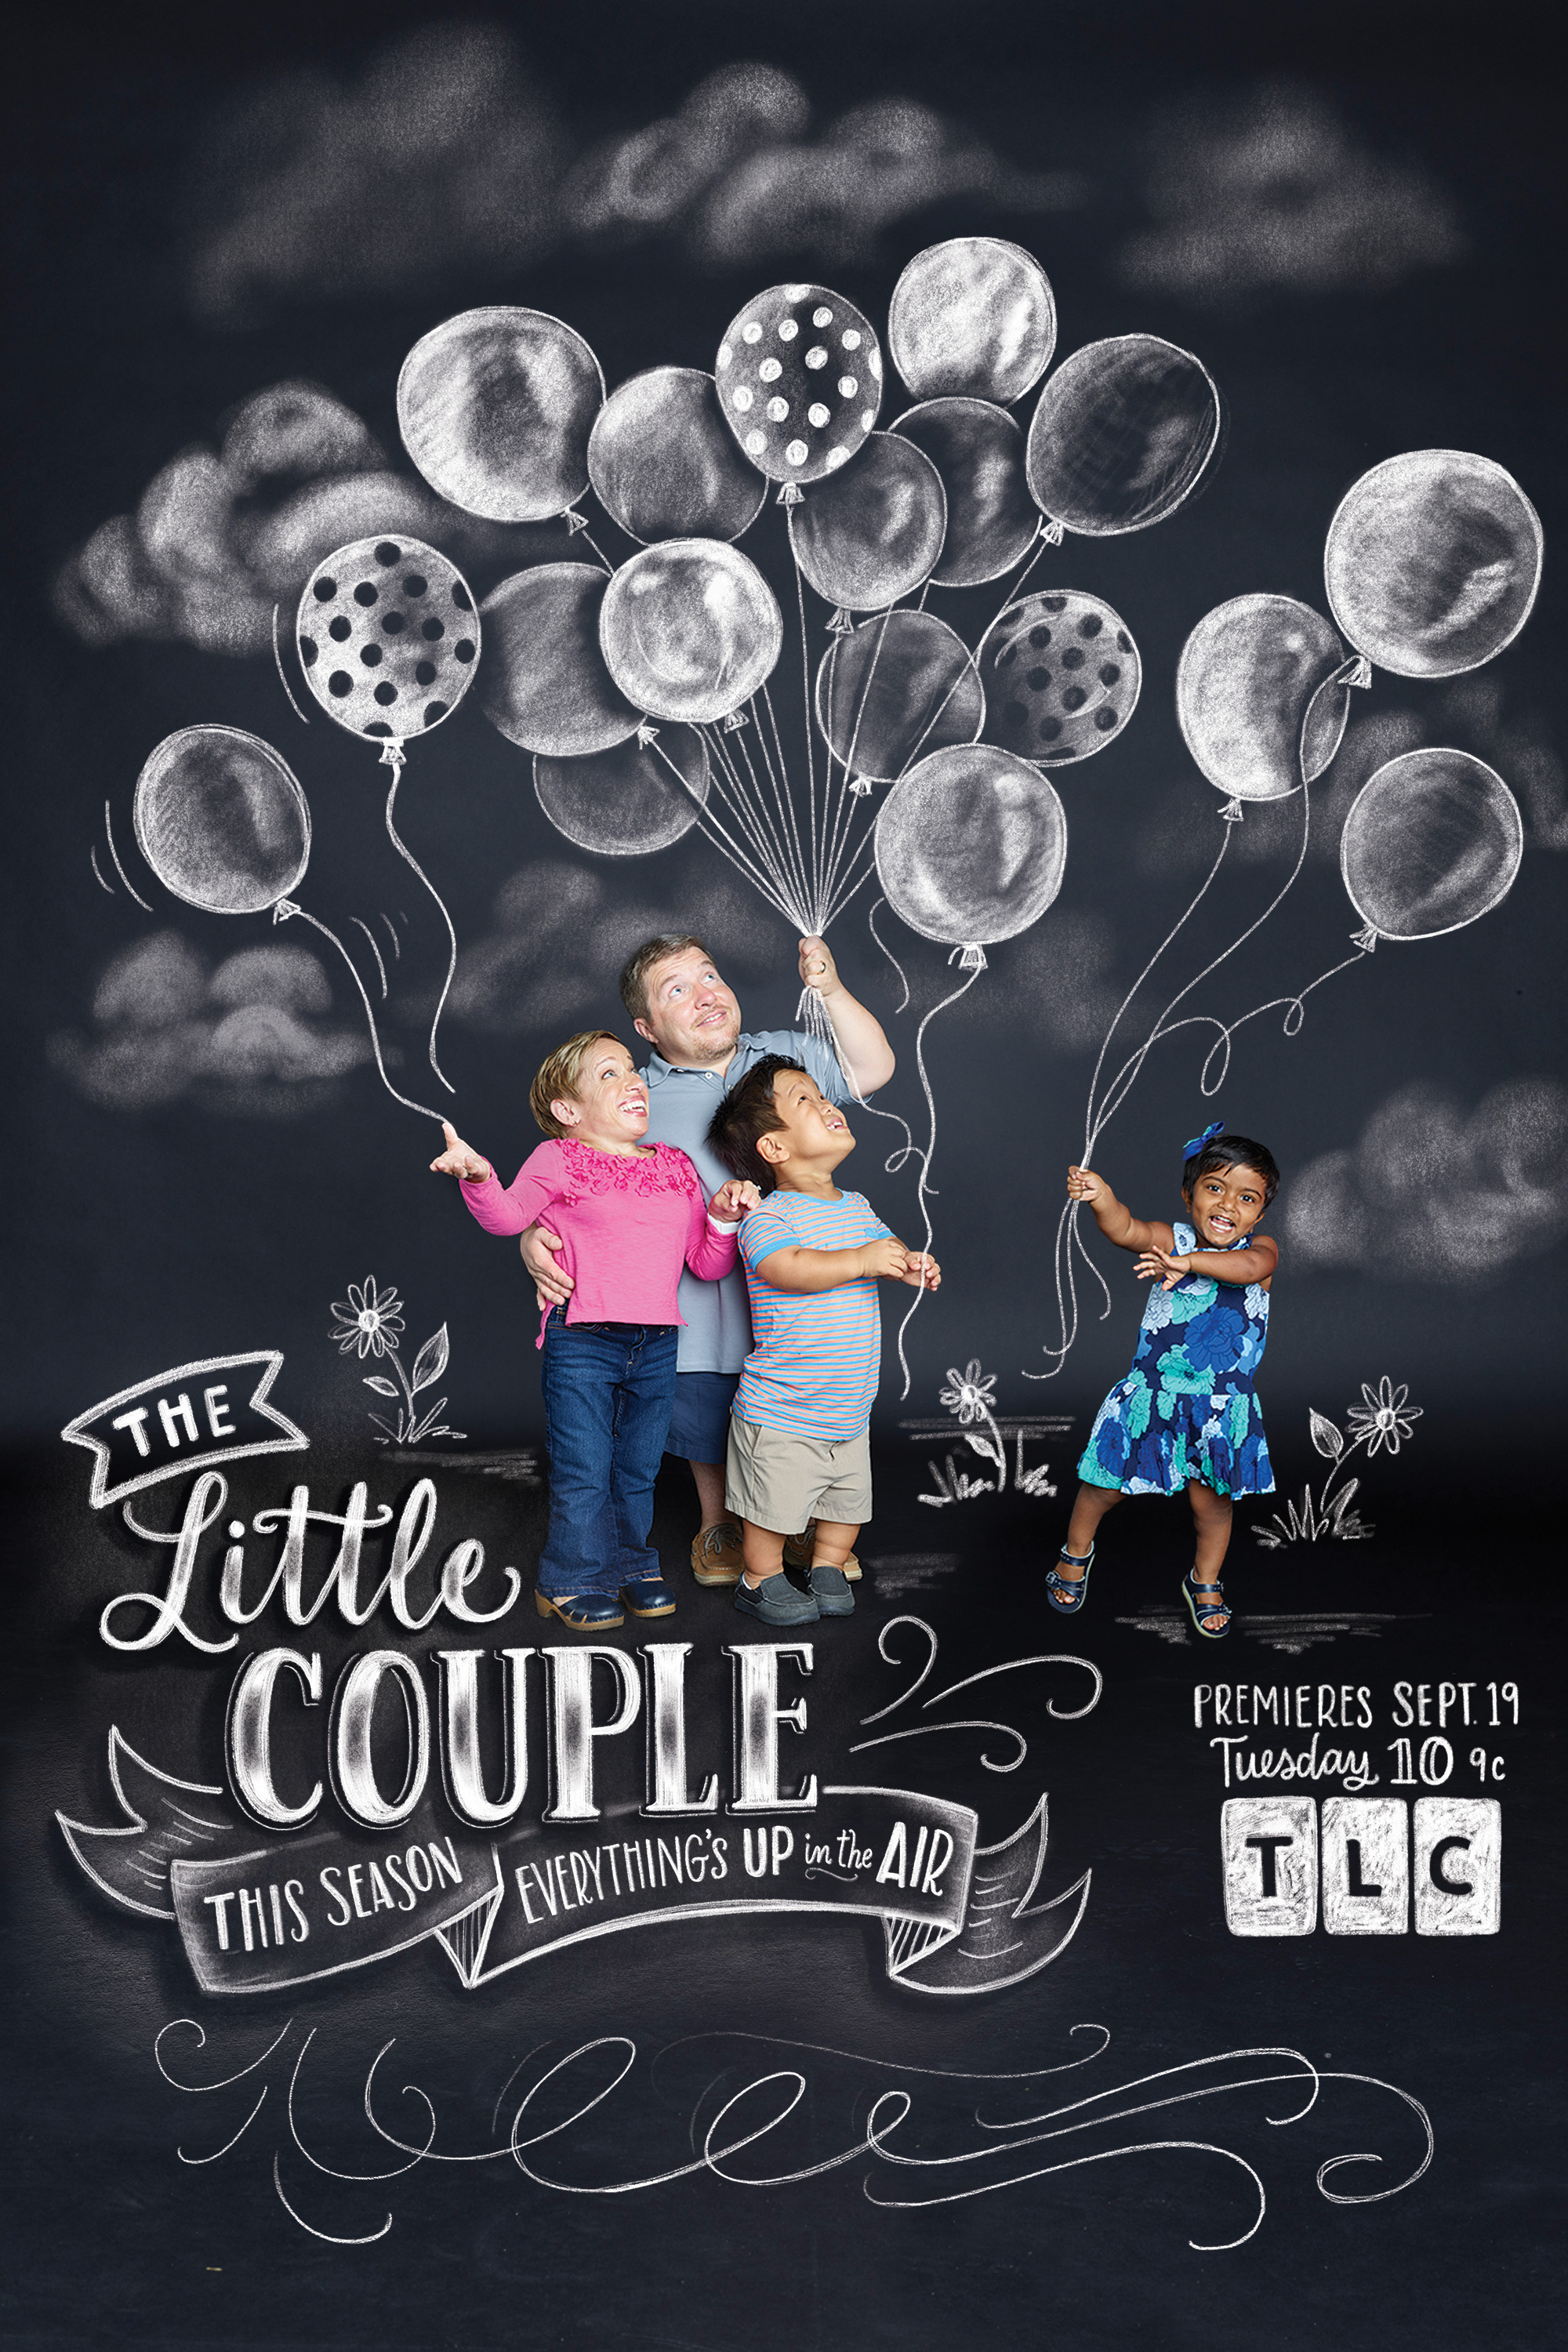 Lily & Val chalk art for the Little Couple on TLC